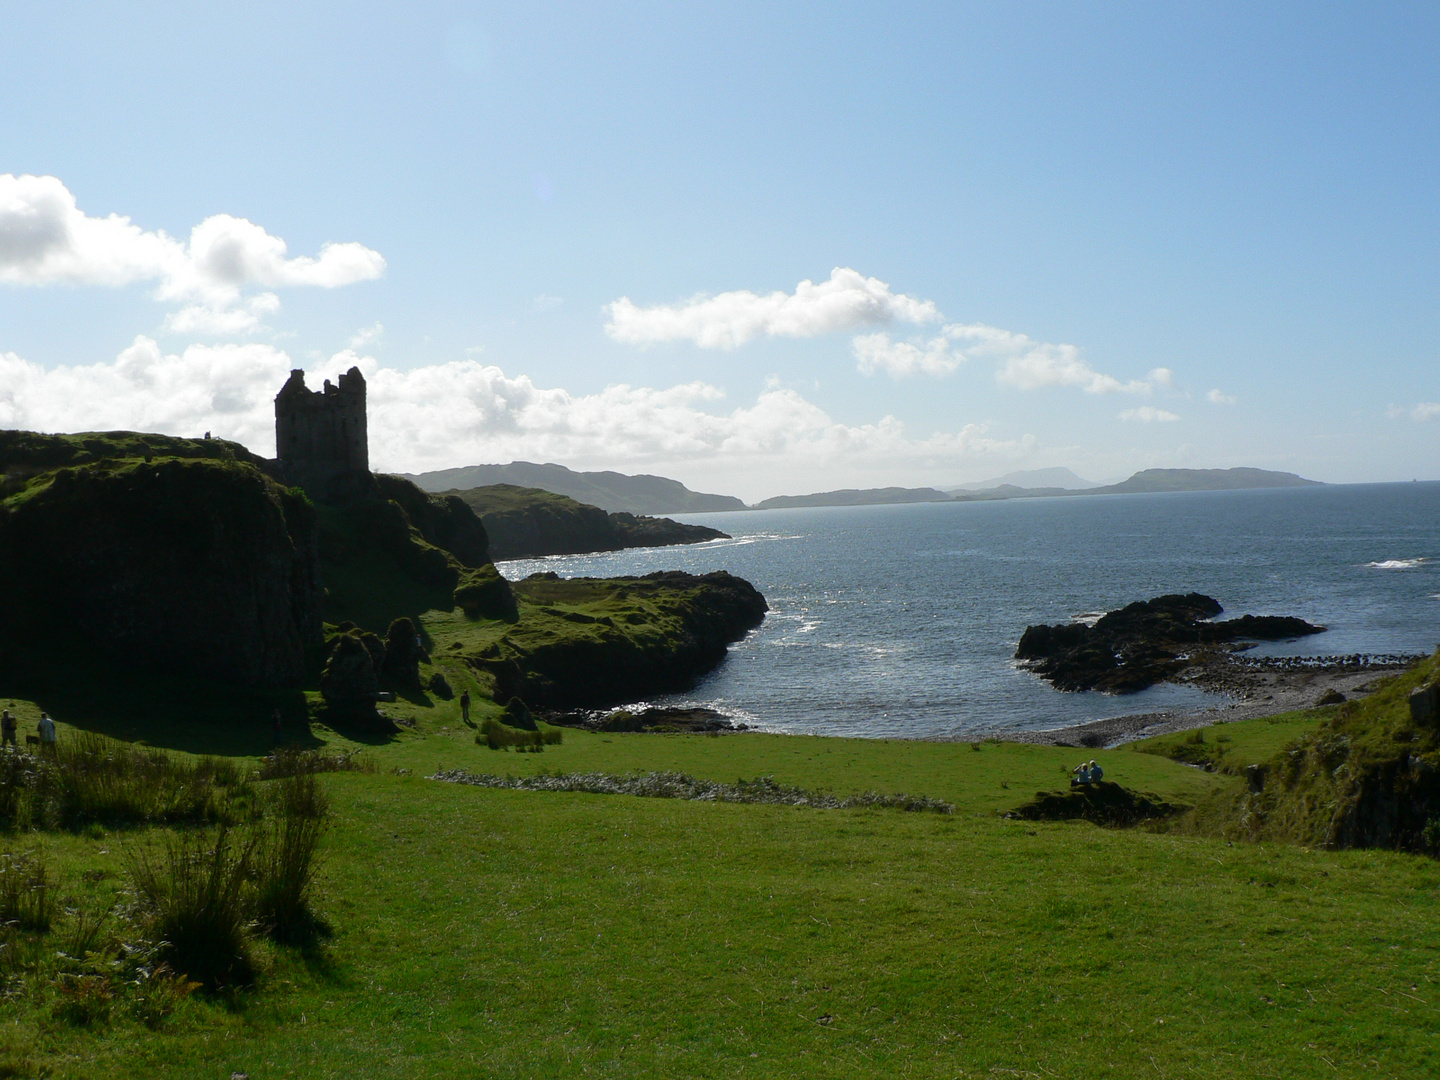 On the Island of Kerrera with the Ruins of Gylen Castle